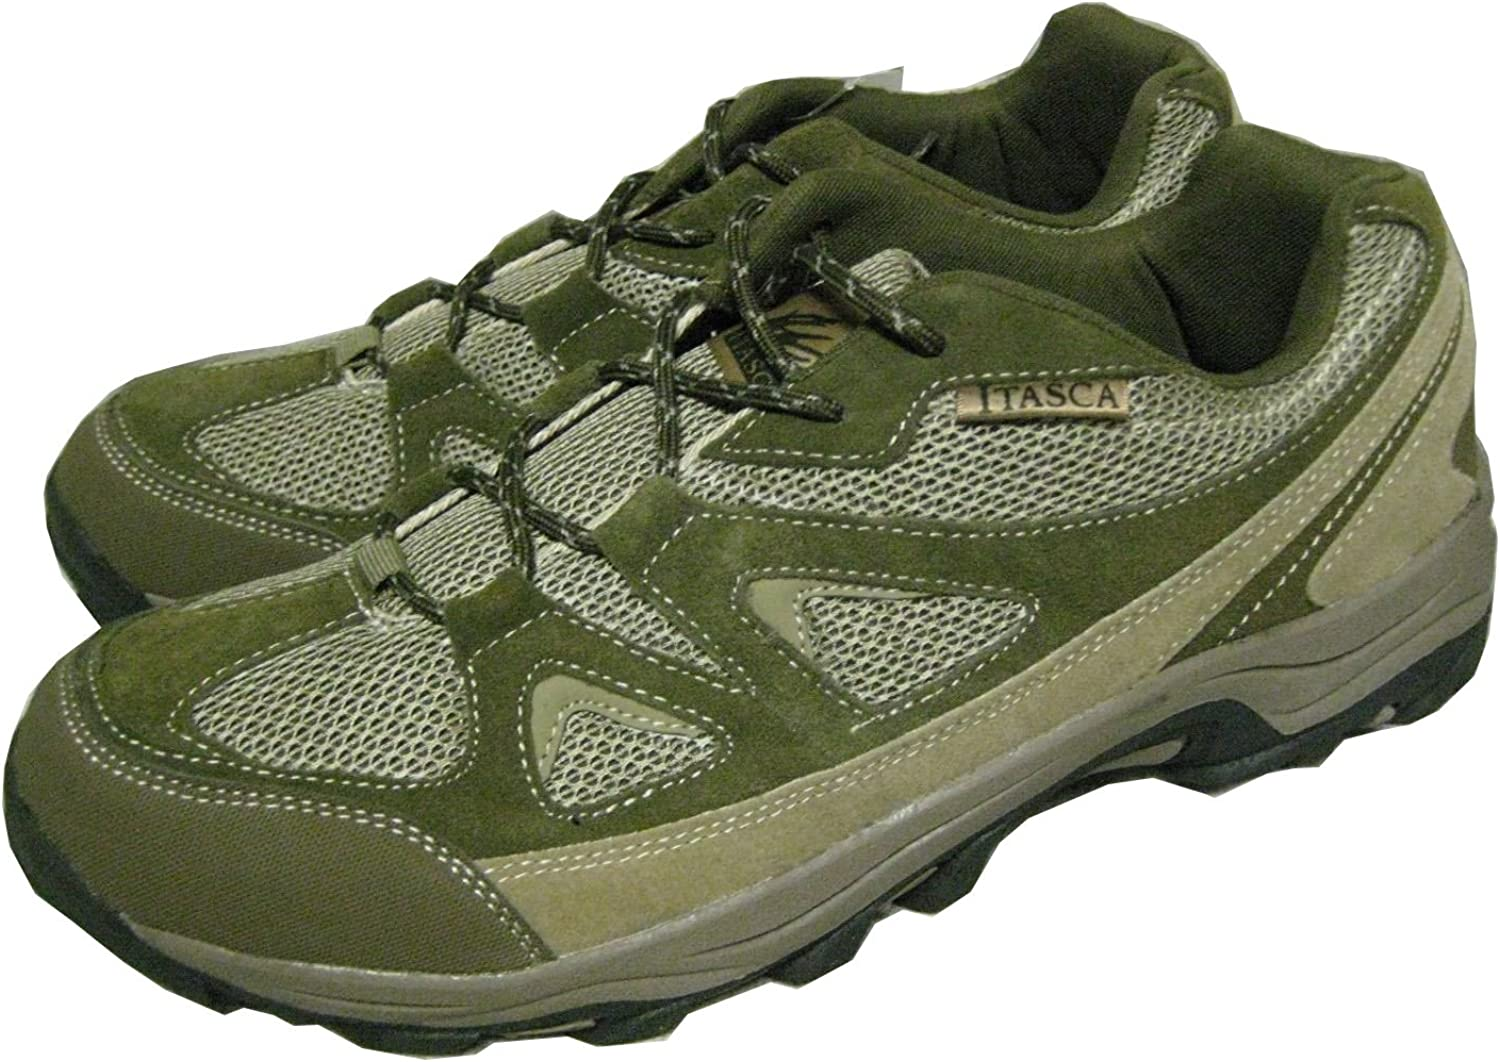 Fort Worth Price reduction Mall Itasca Men's Striker Ii Lightweight and Hiker Nylon Hiking Suede